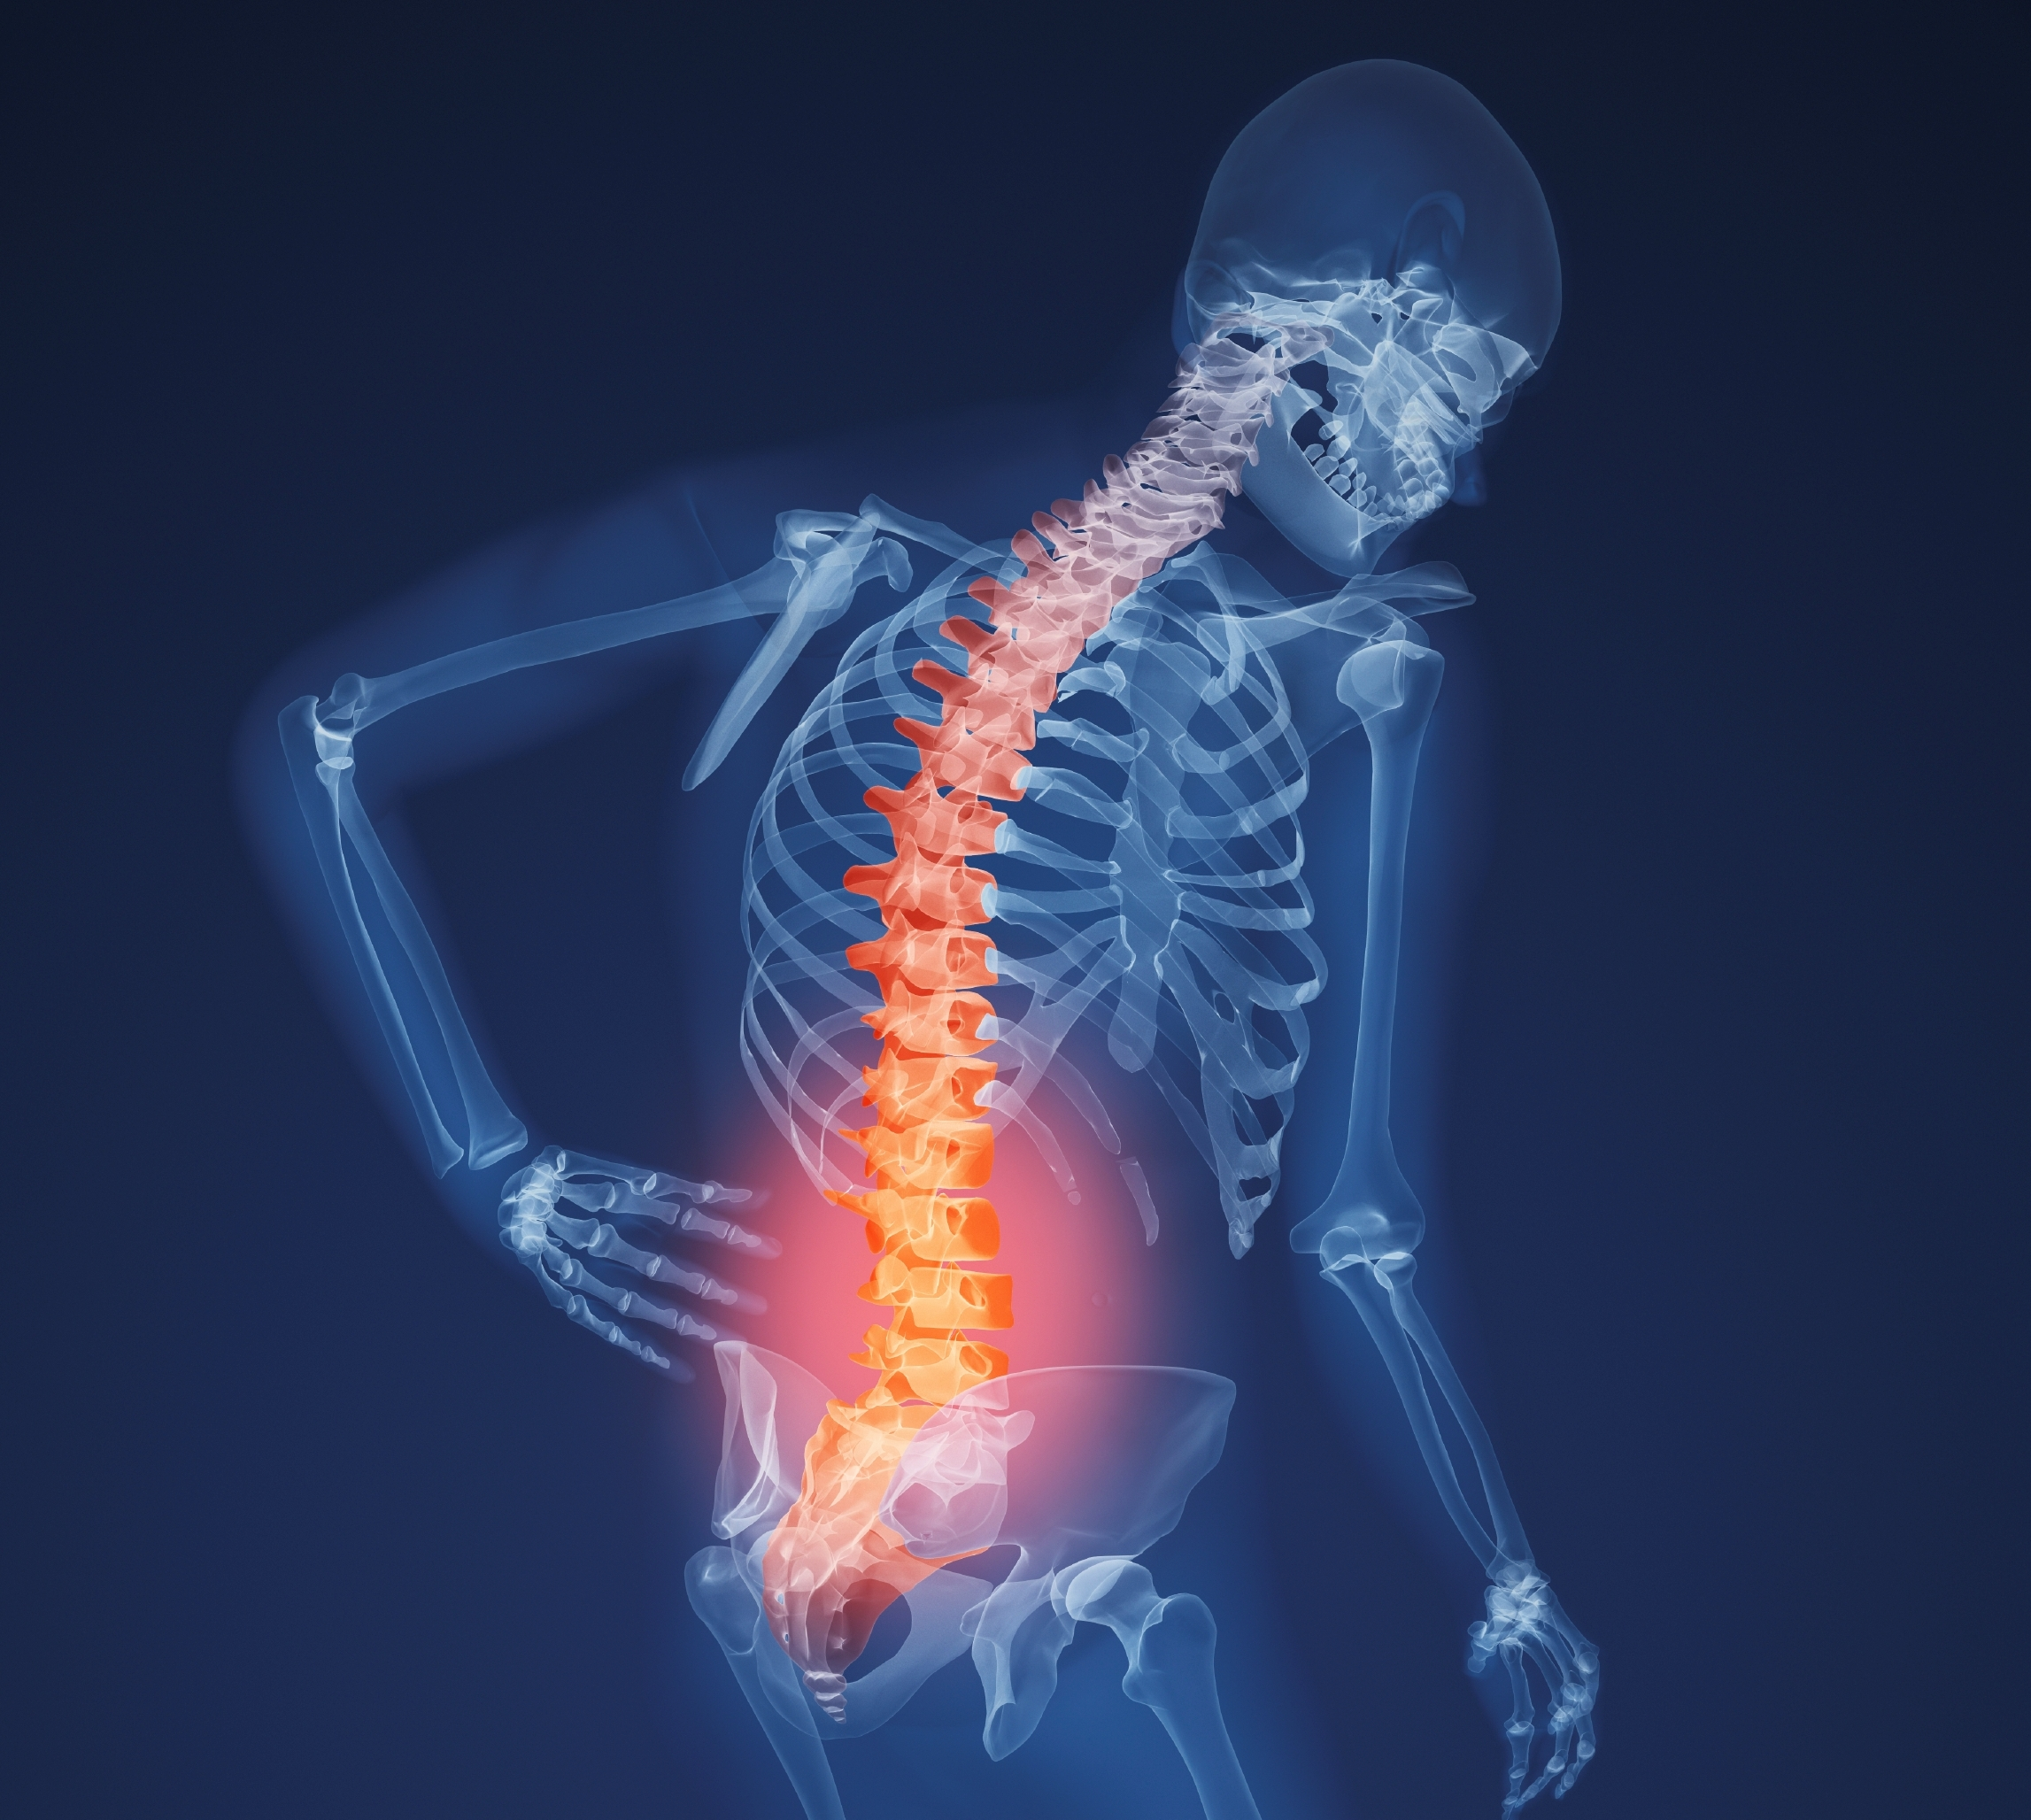 Forum on this topic: Physical Therapy for Osteoporosis Treatment, physical-therapy-for-osteoporosis-treatment/